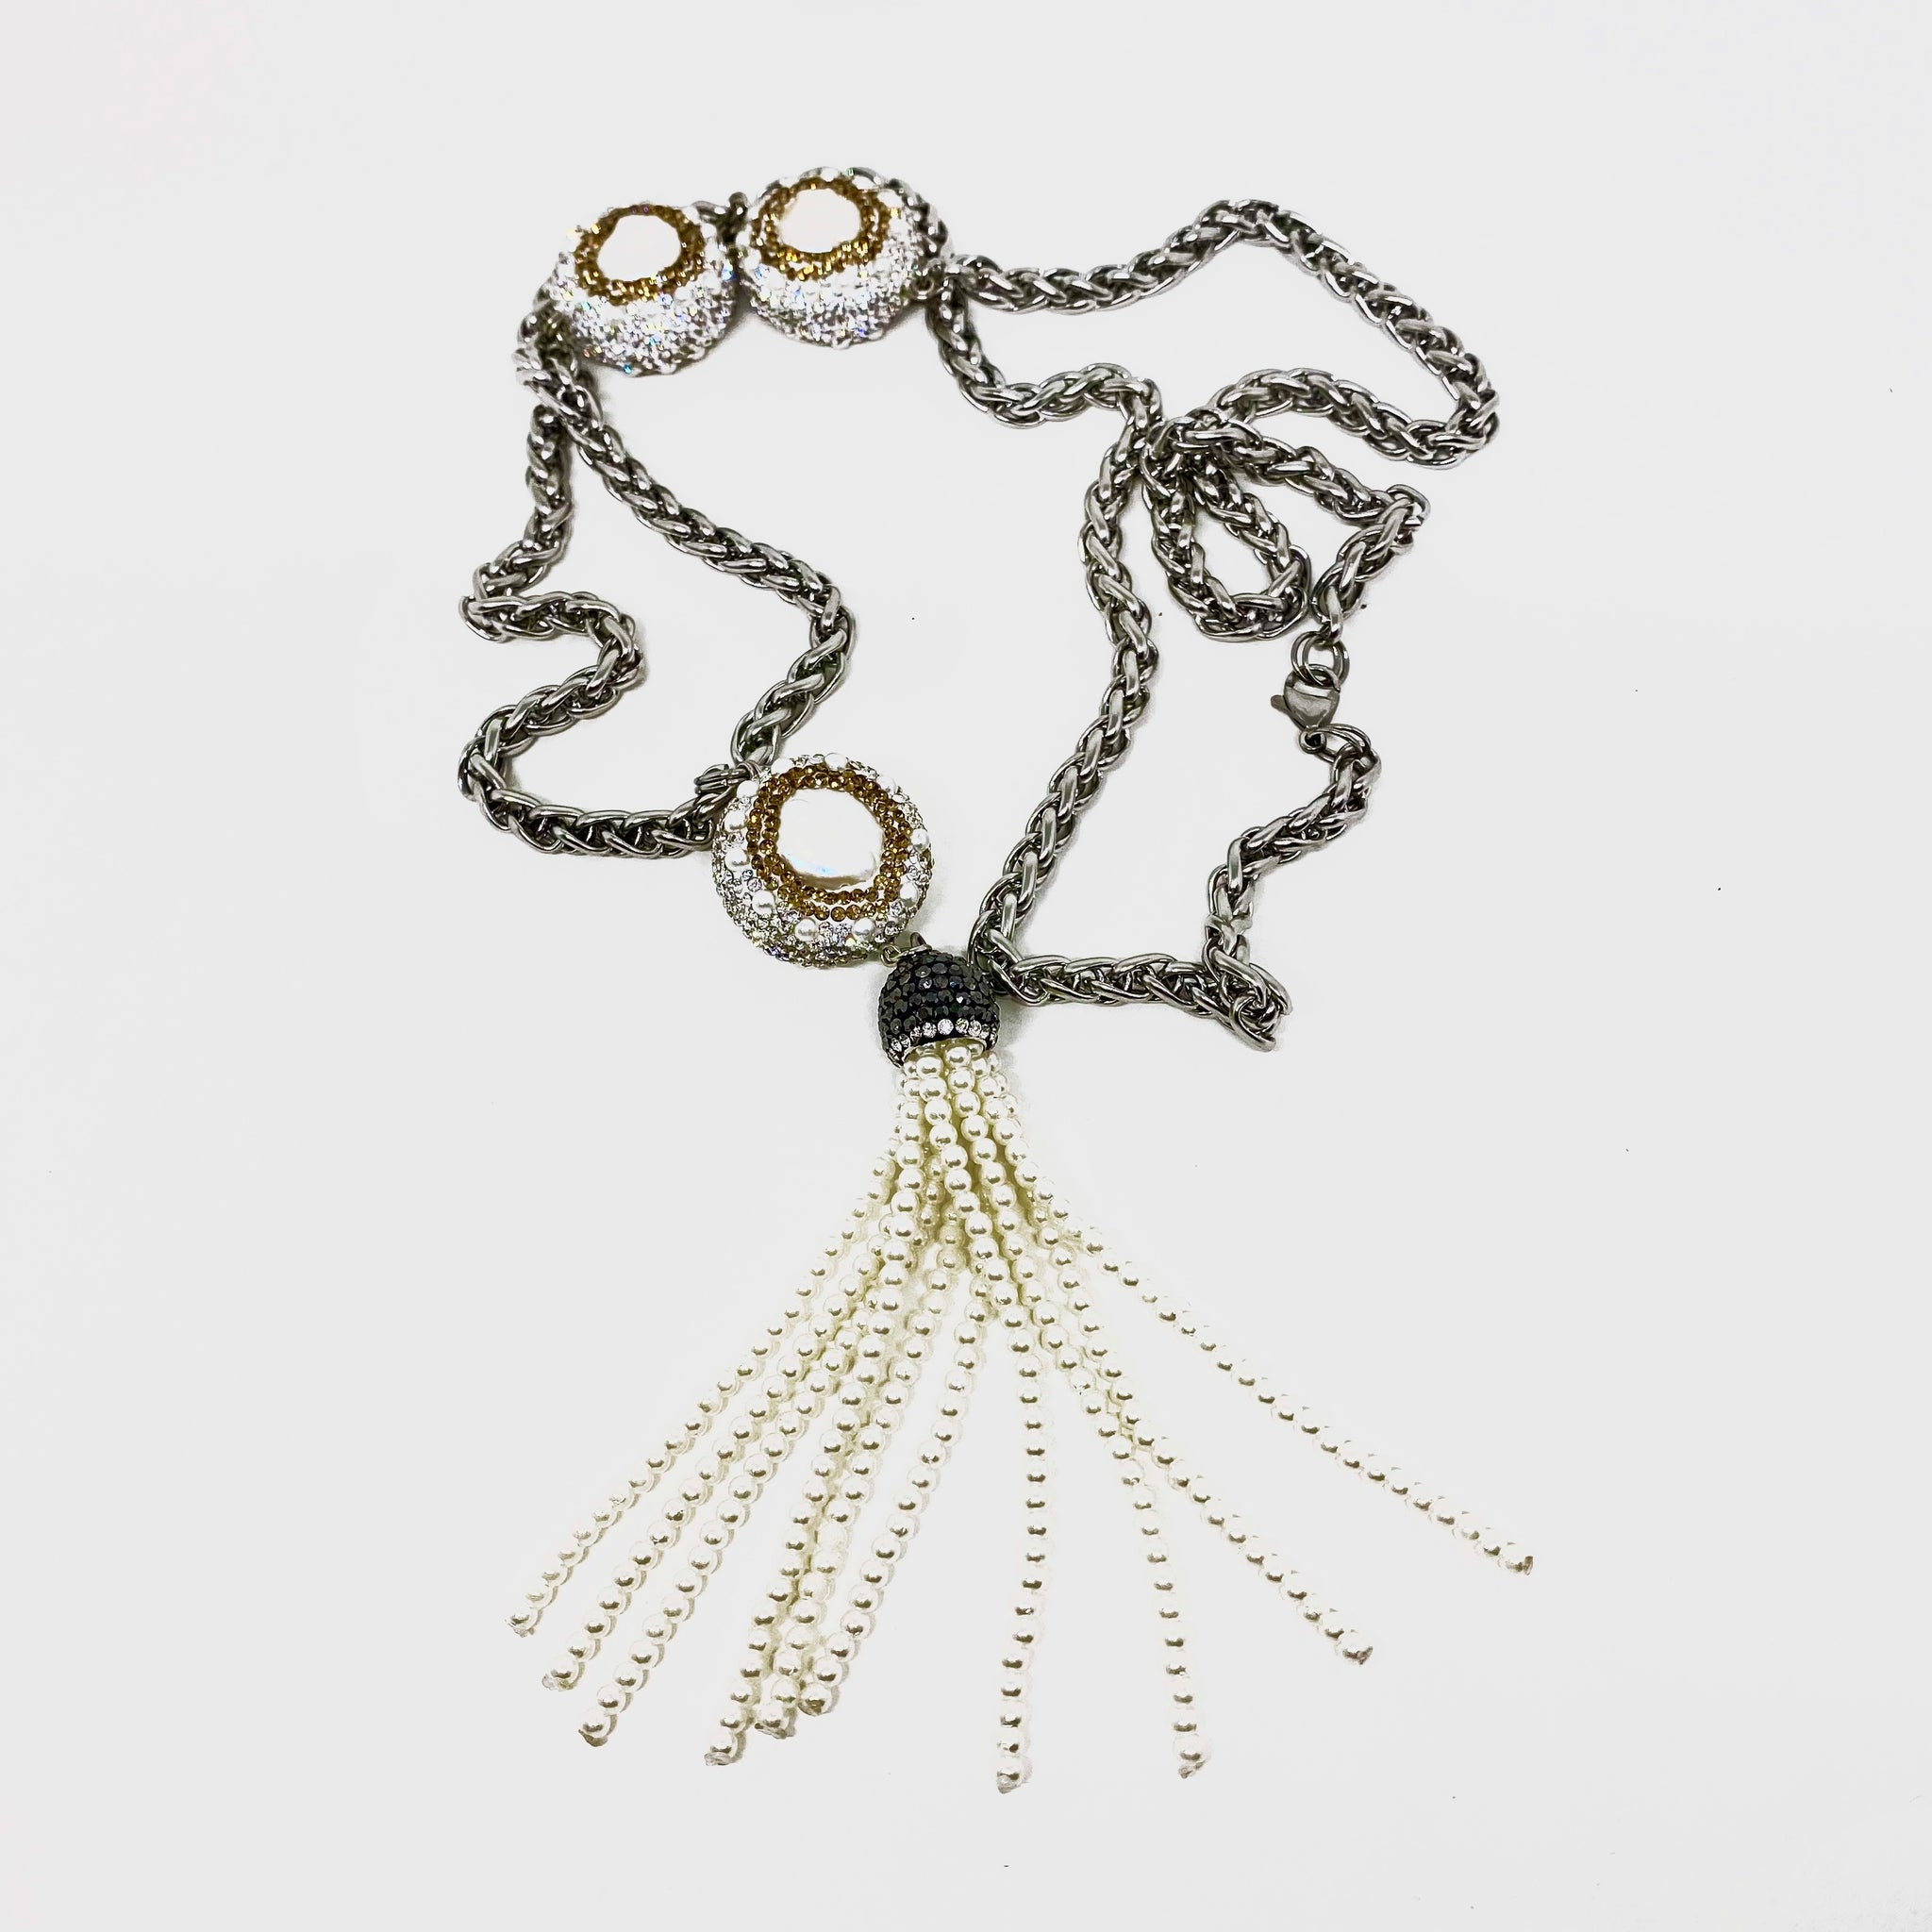 LONG LARIAT MADE OF BRAIDED 6MM STAINLESS STEEL CHAIN WITH PAVE CRYSTAL-AND-PEARL BEADS AND PEARL TASSEL.by NYET Jewelry  Edit alt text